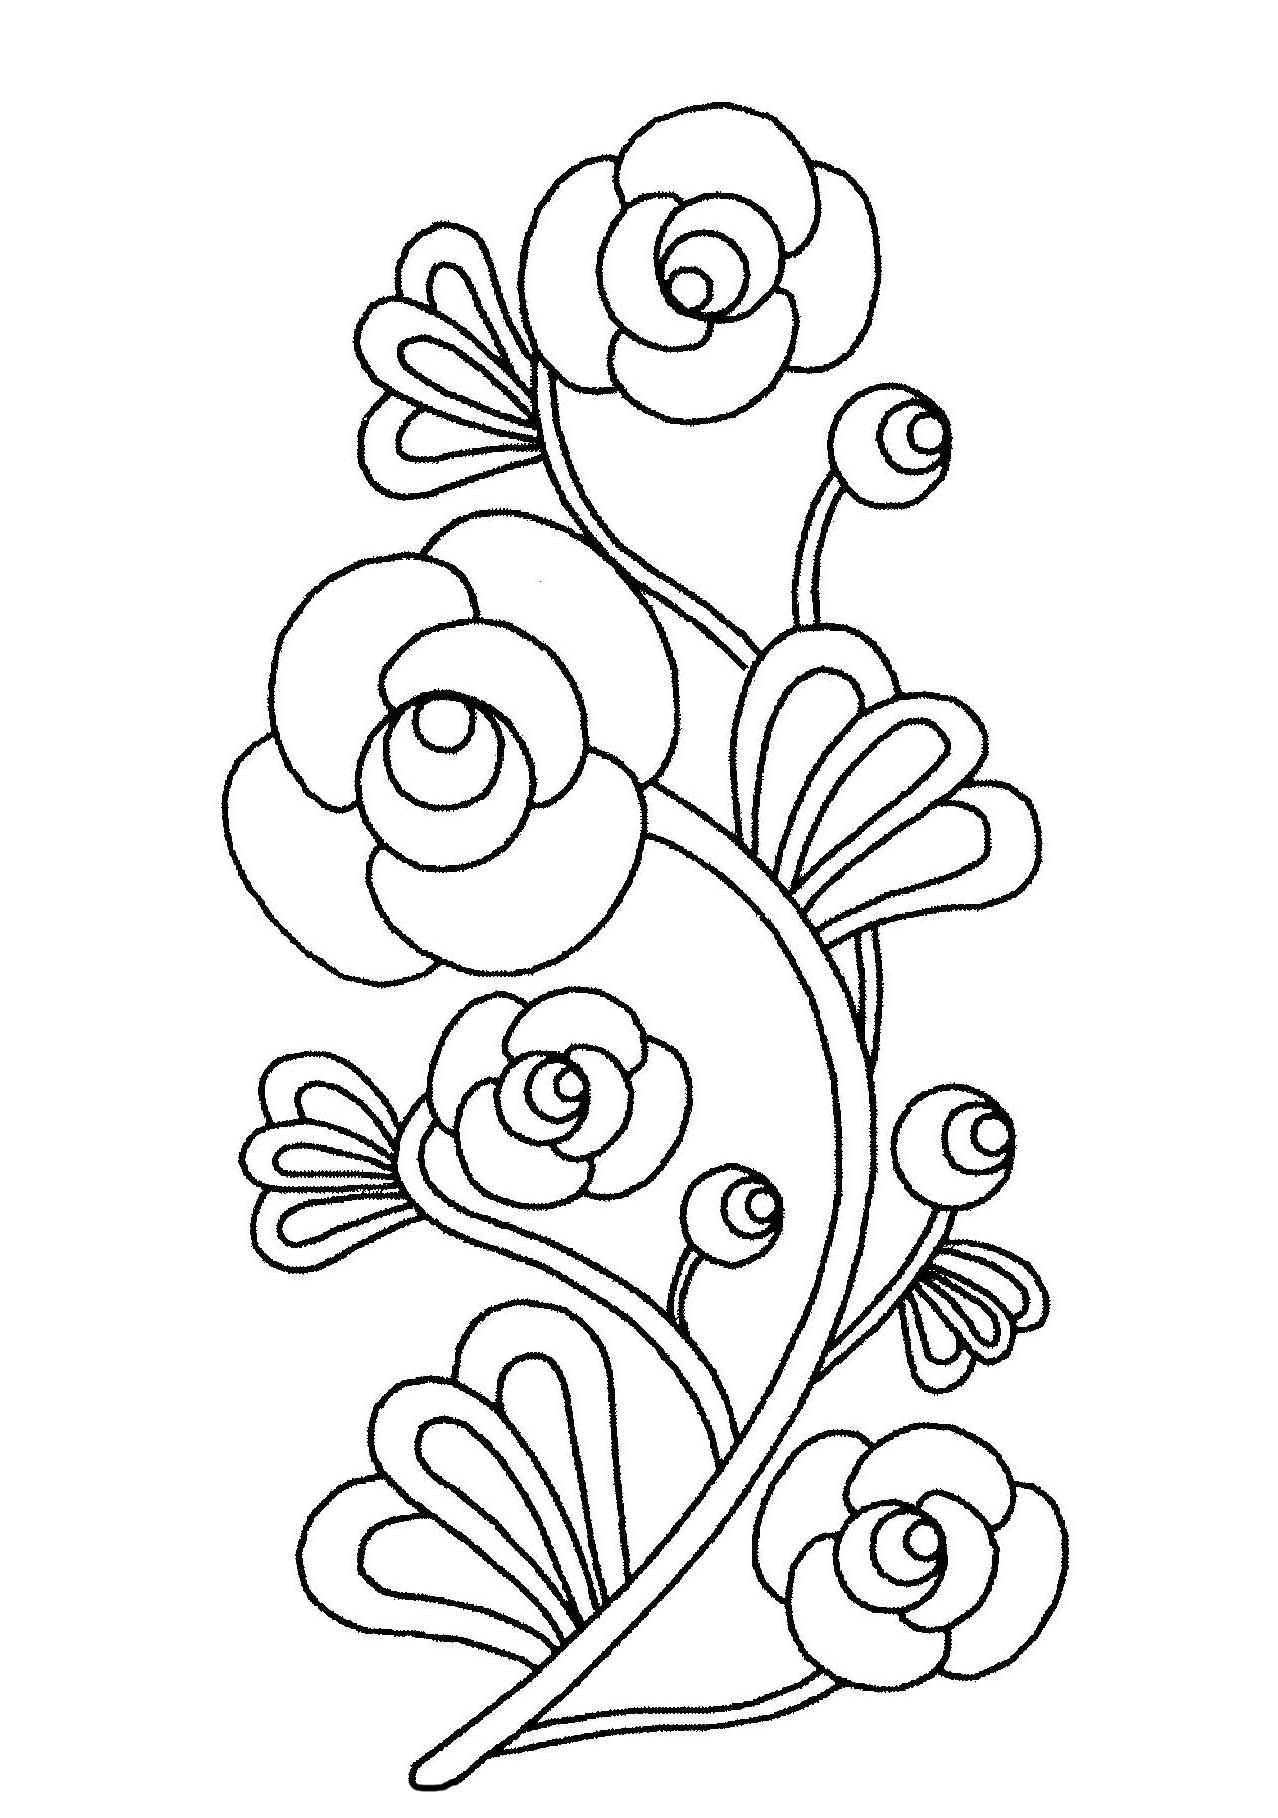 beautiful flowers coloring pages free easy to print flower coloring pages tulamama flowers pages coloring beautiful